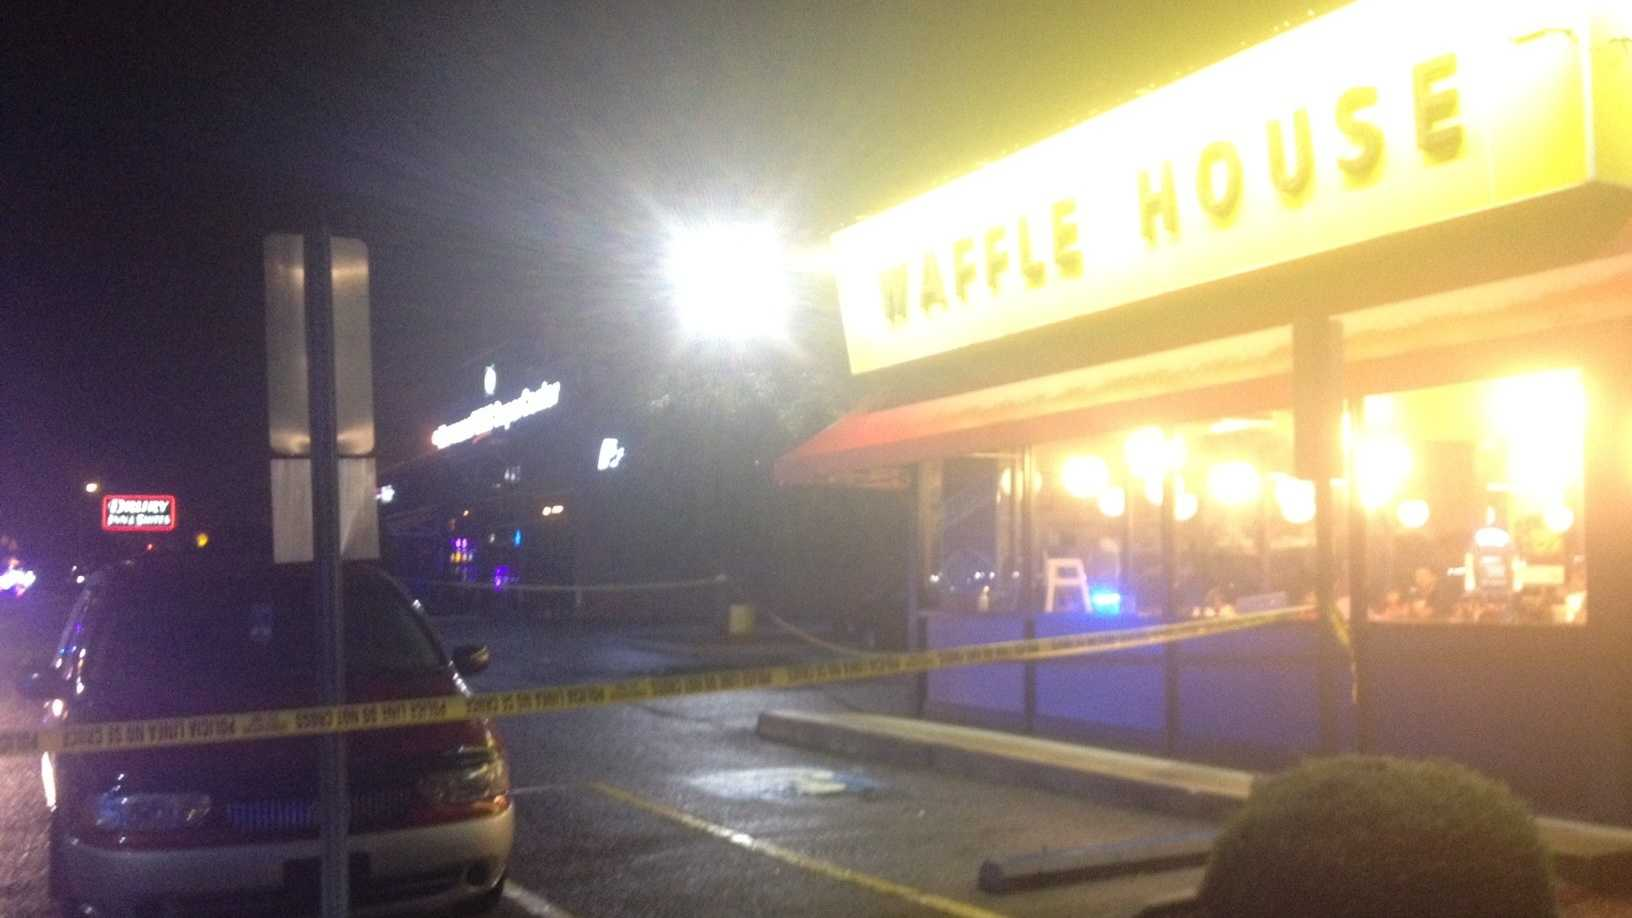 Greensboro police say one person was found with a gunshot wound near Waffle House at 3204 High Point Rd. around 10:30 p.m. Thursday.